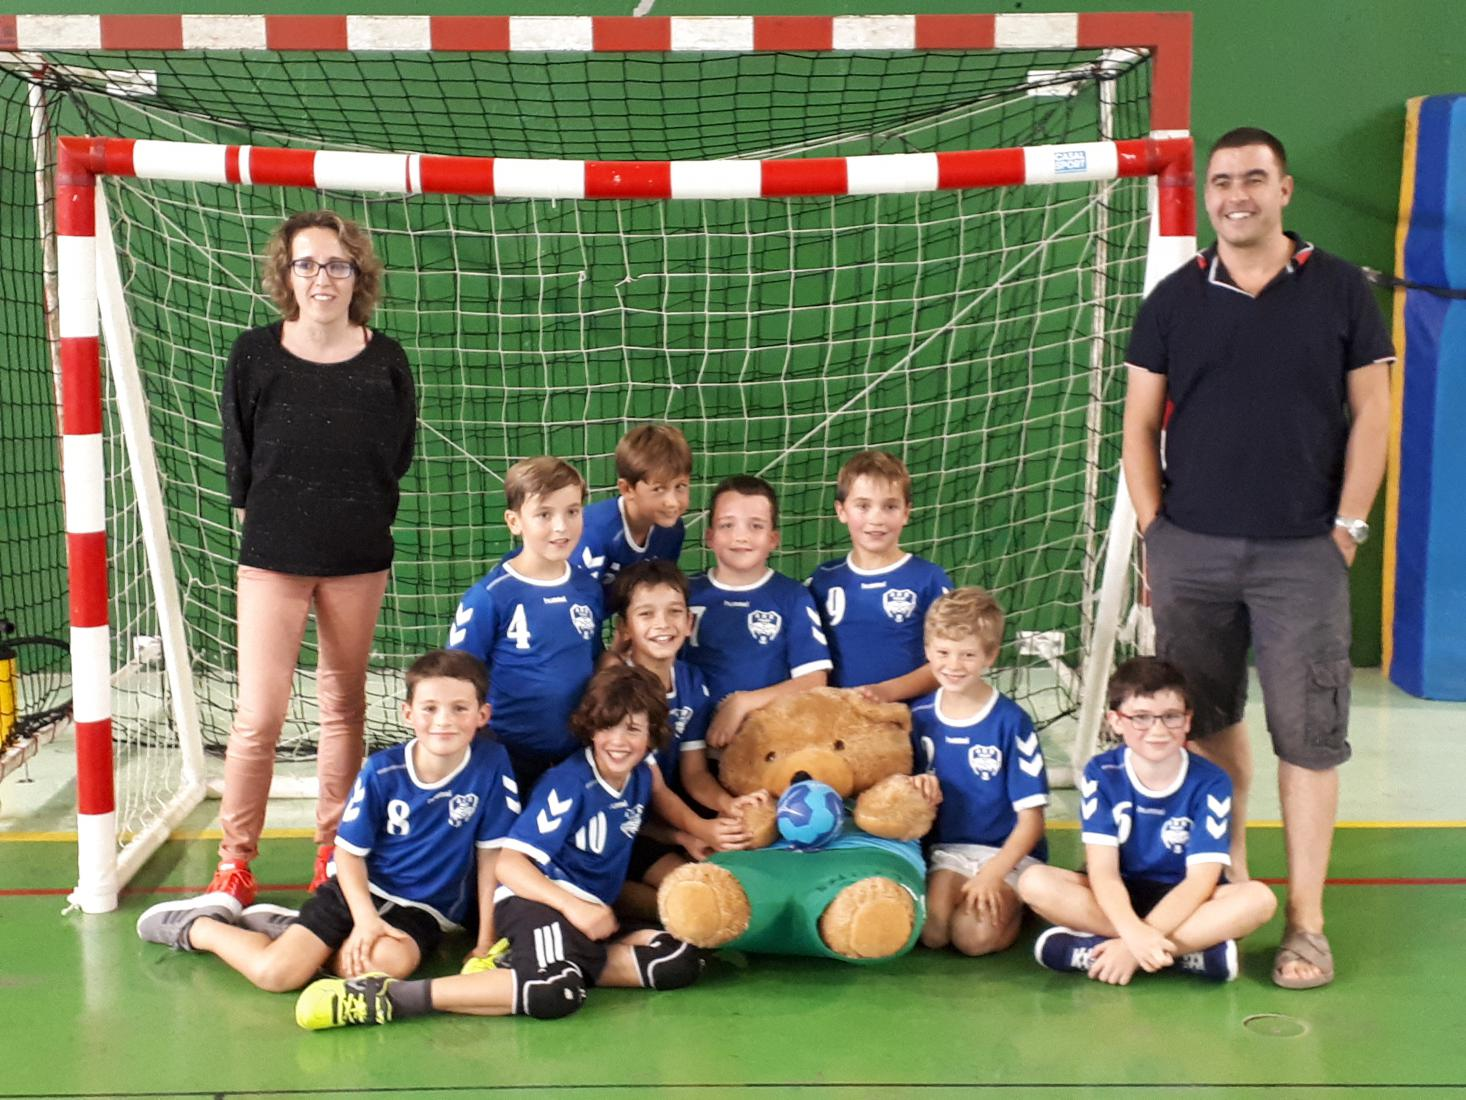 VALLET -11 (1) - Association Handball Vallet